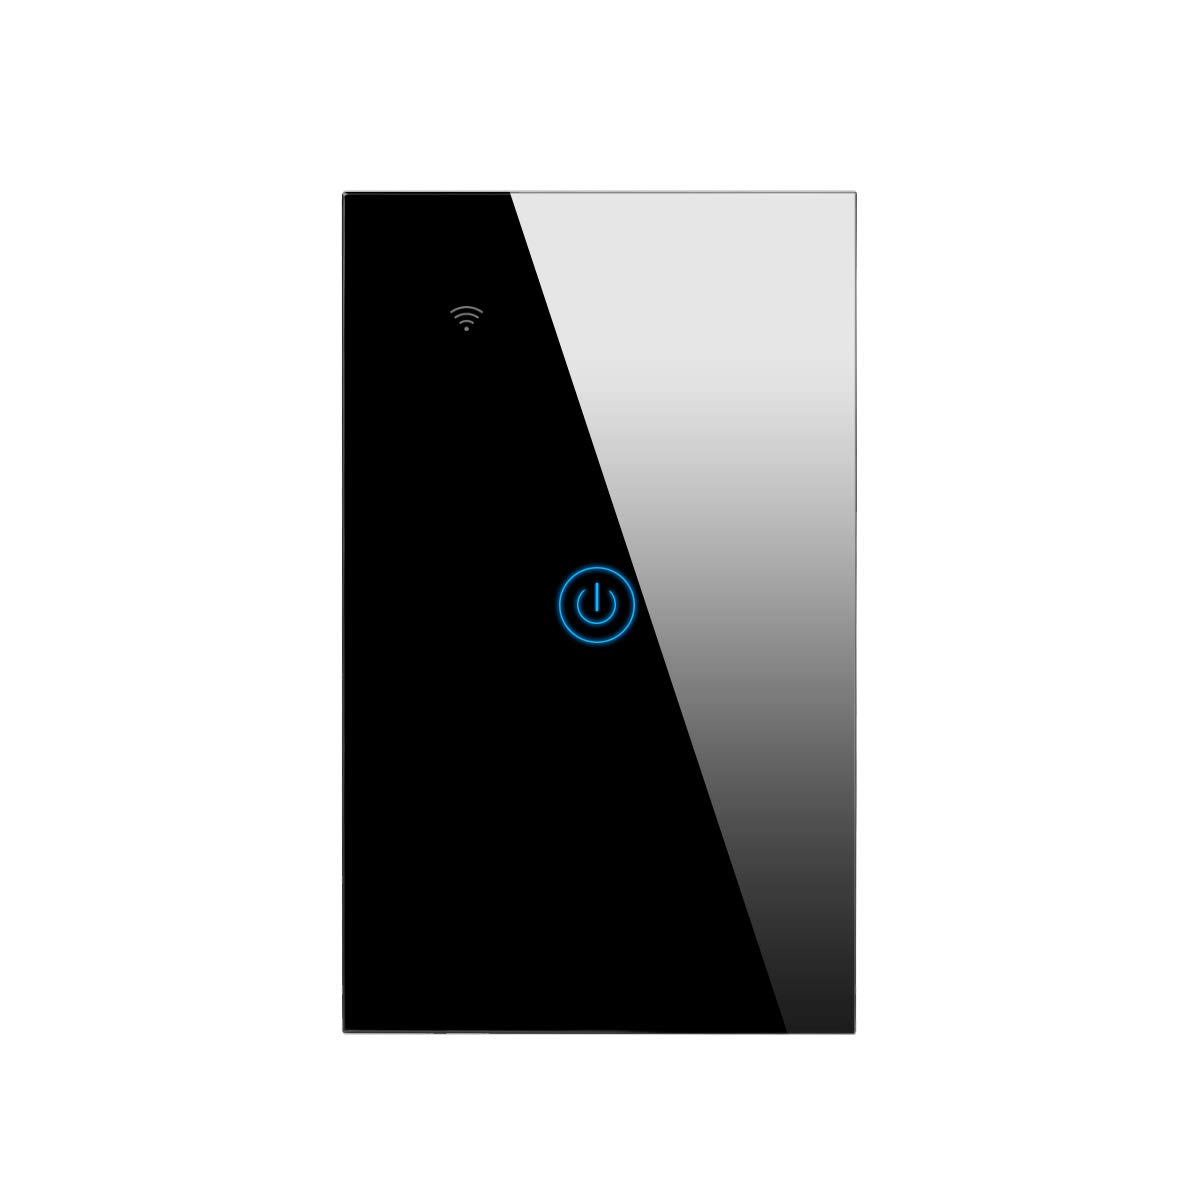 AIMENGTE Smart Homekit WiFi Touch Light Switch, Work with Apple Homekit, Siri Voice Control, Timer Setting, Neutral Wire Required 110-220V US Smart Home Touch Switches (1 Gang 1 Way, Black)